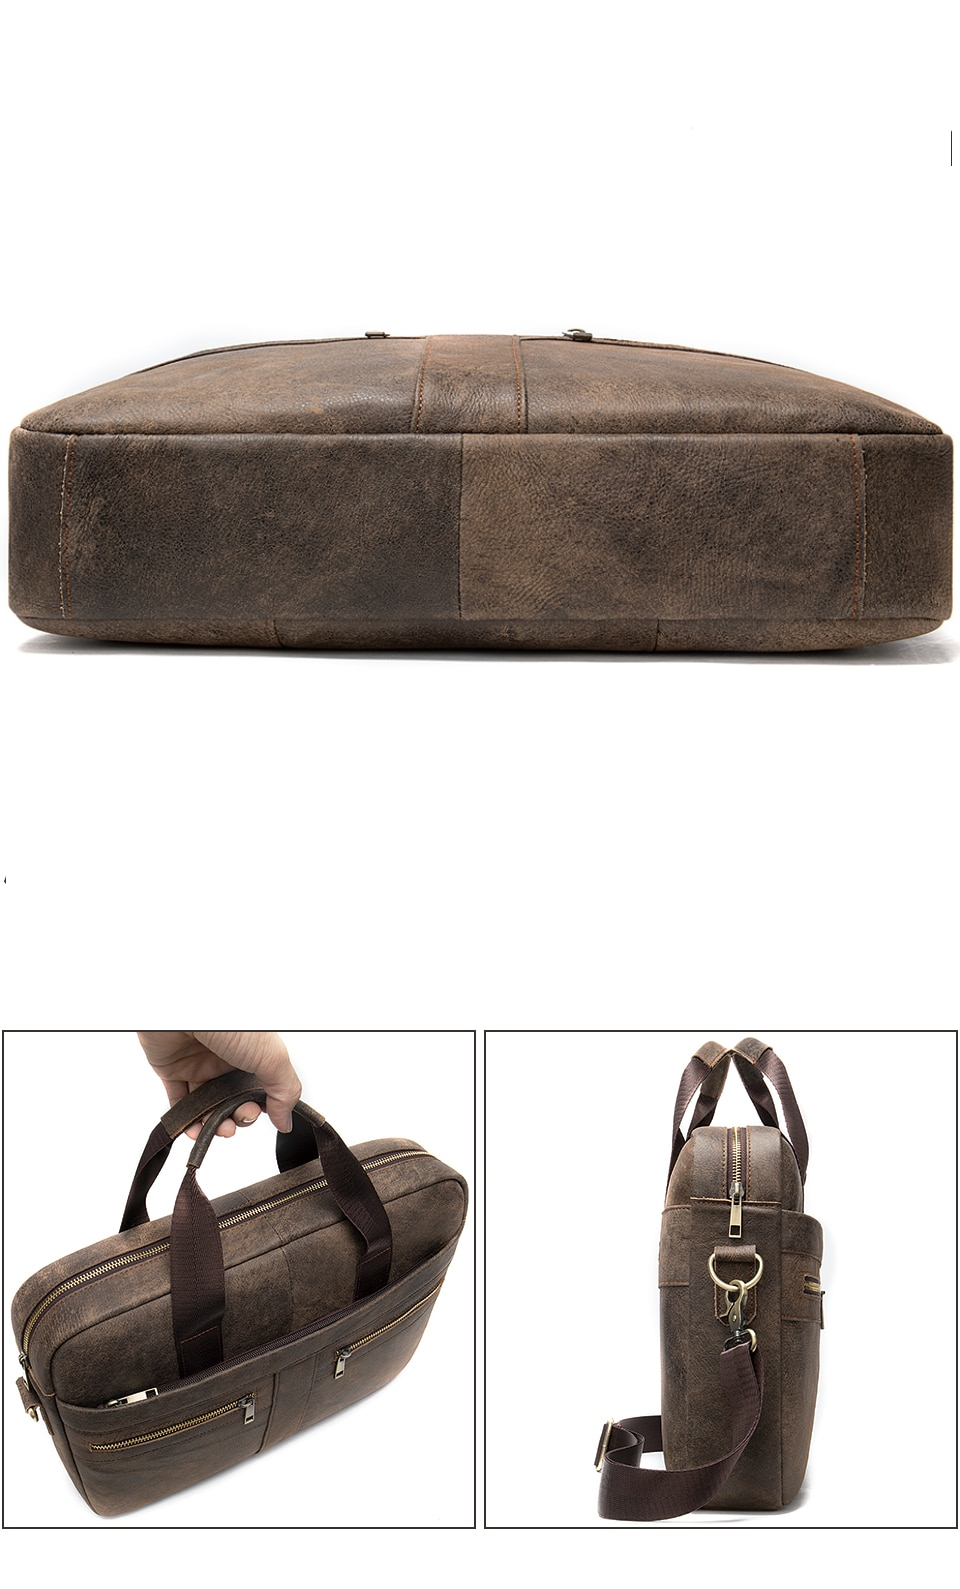 High-quality leather briefcase for men.